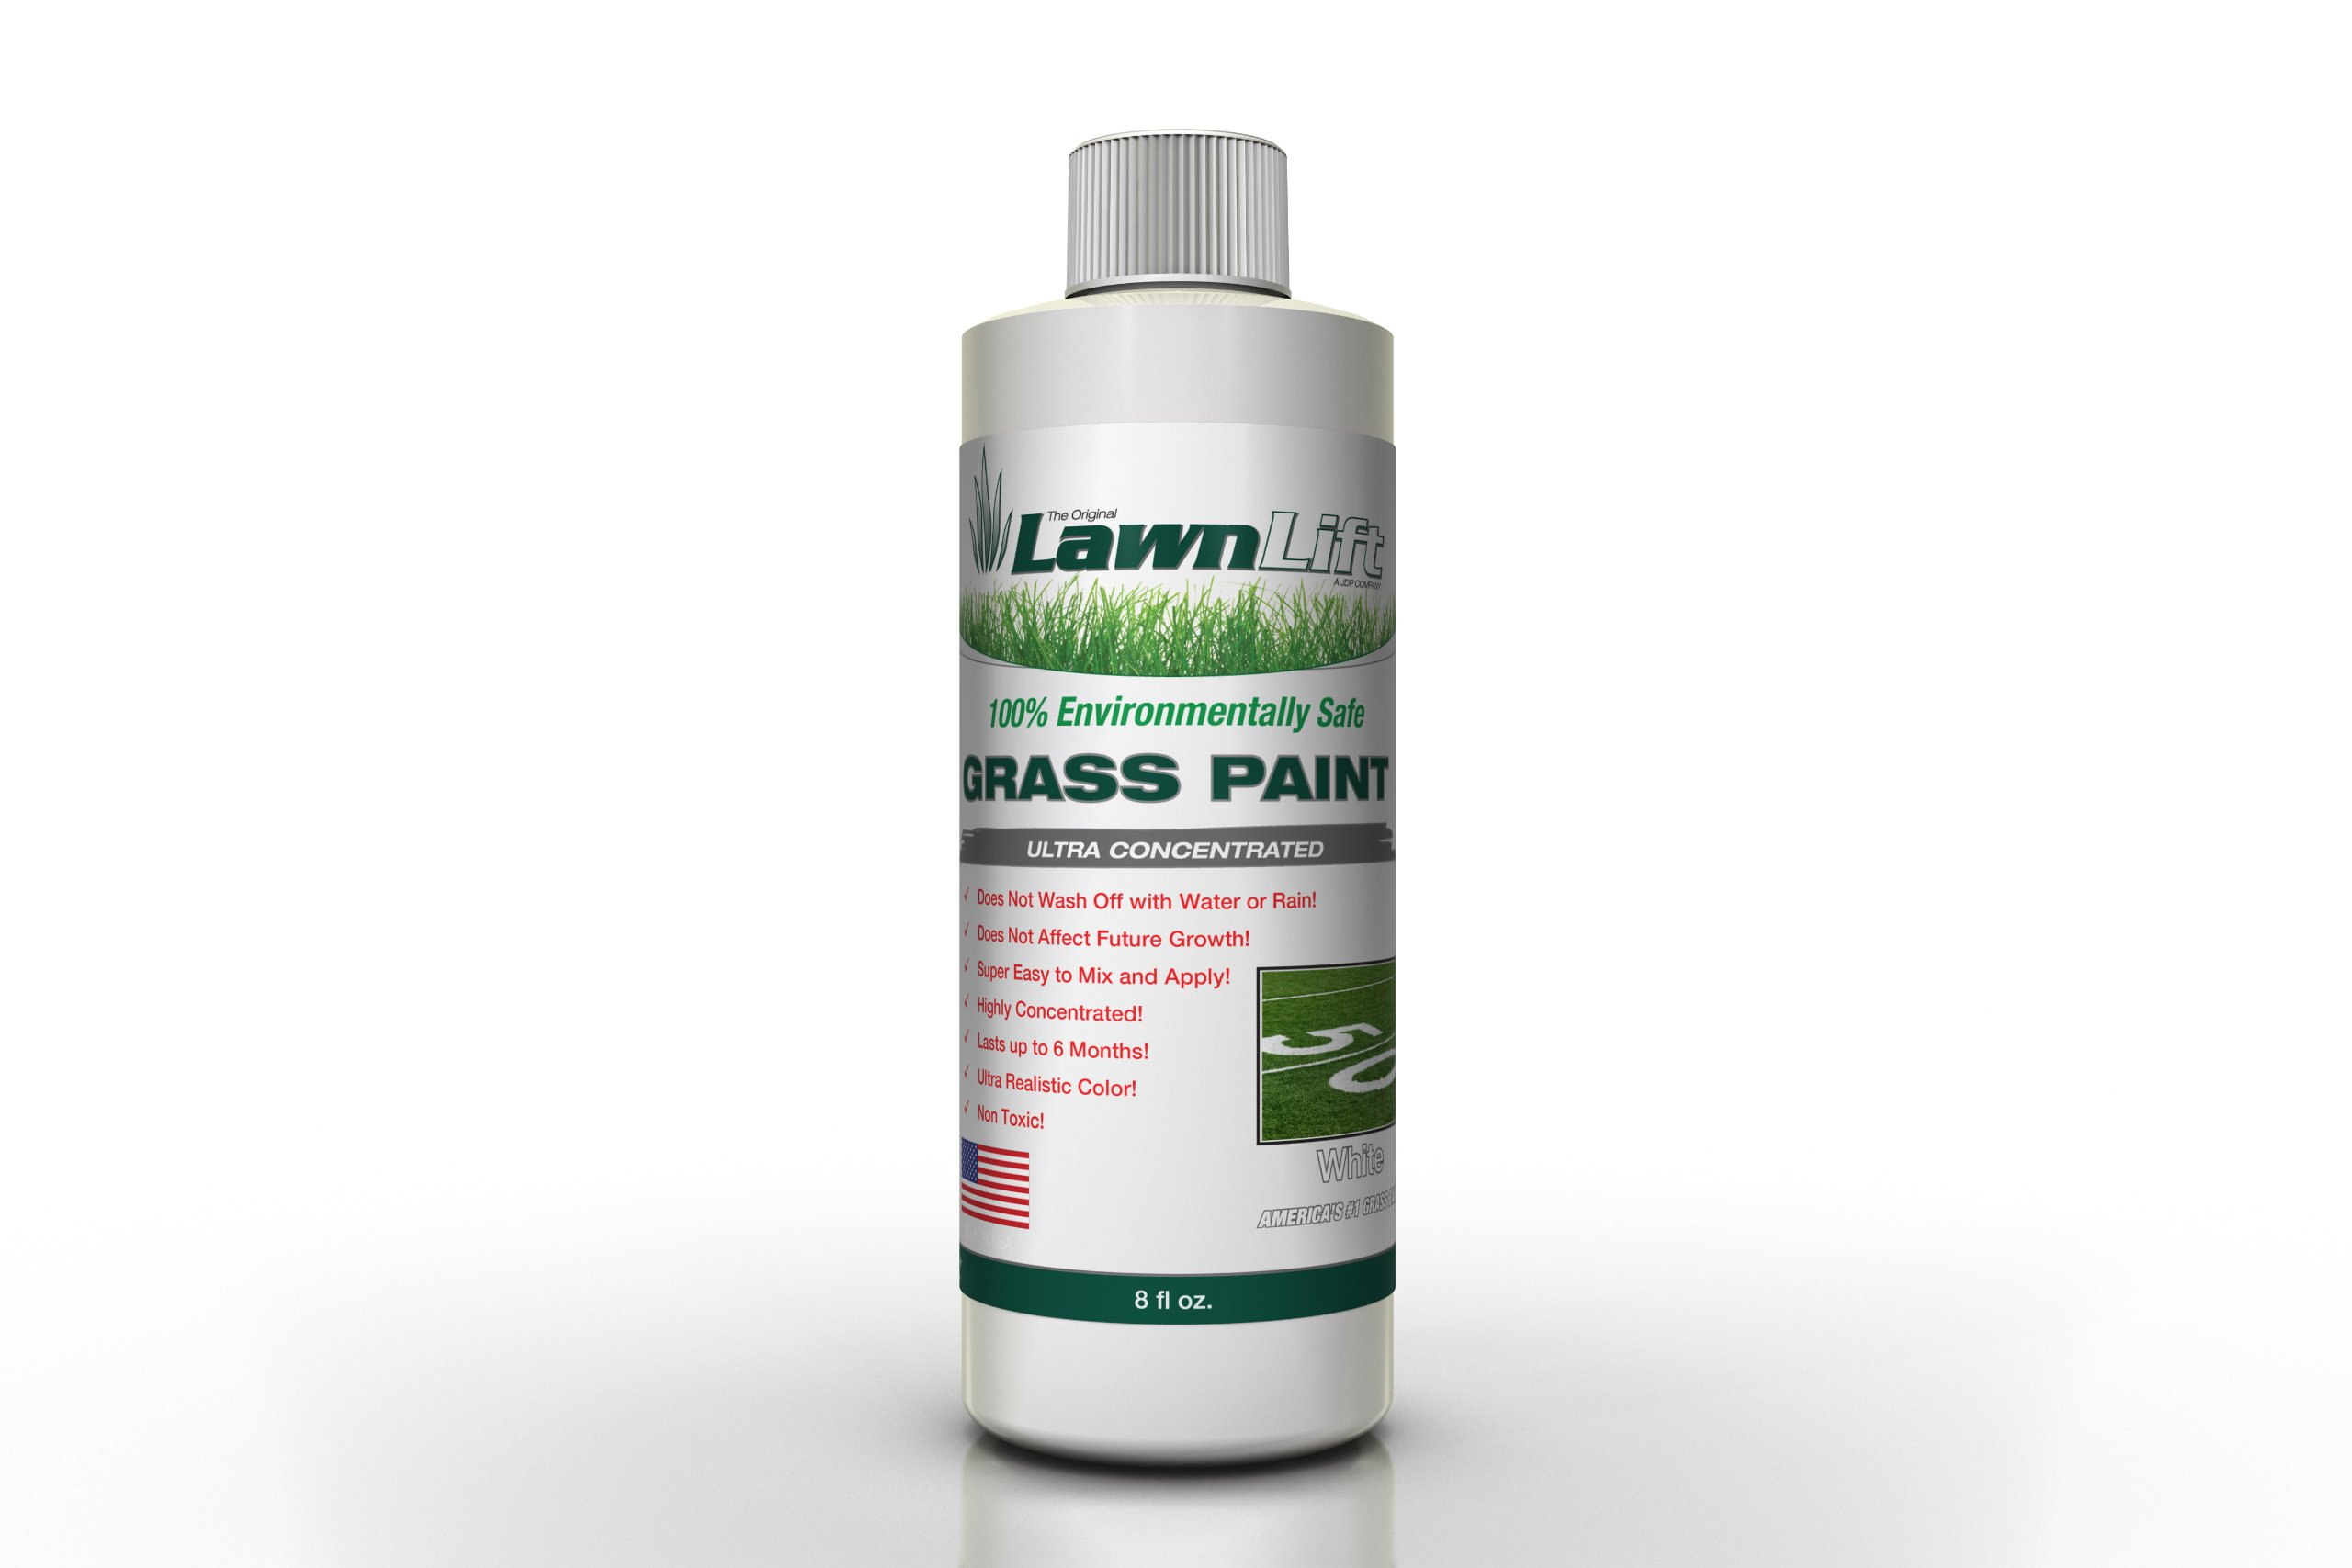 Lawnlift Ultra Concentrated (White) Grass Paint 8oz. = 2.5 Quarts of Product. by Lawnlift Grass and Mulch Paints (Image #2)